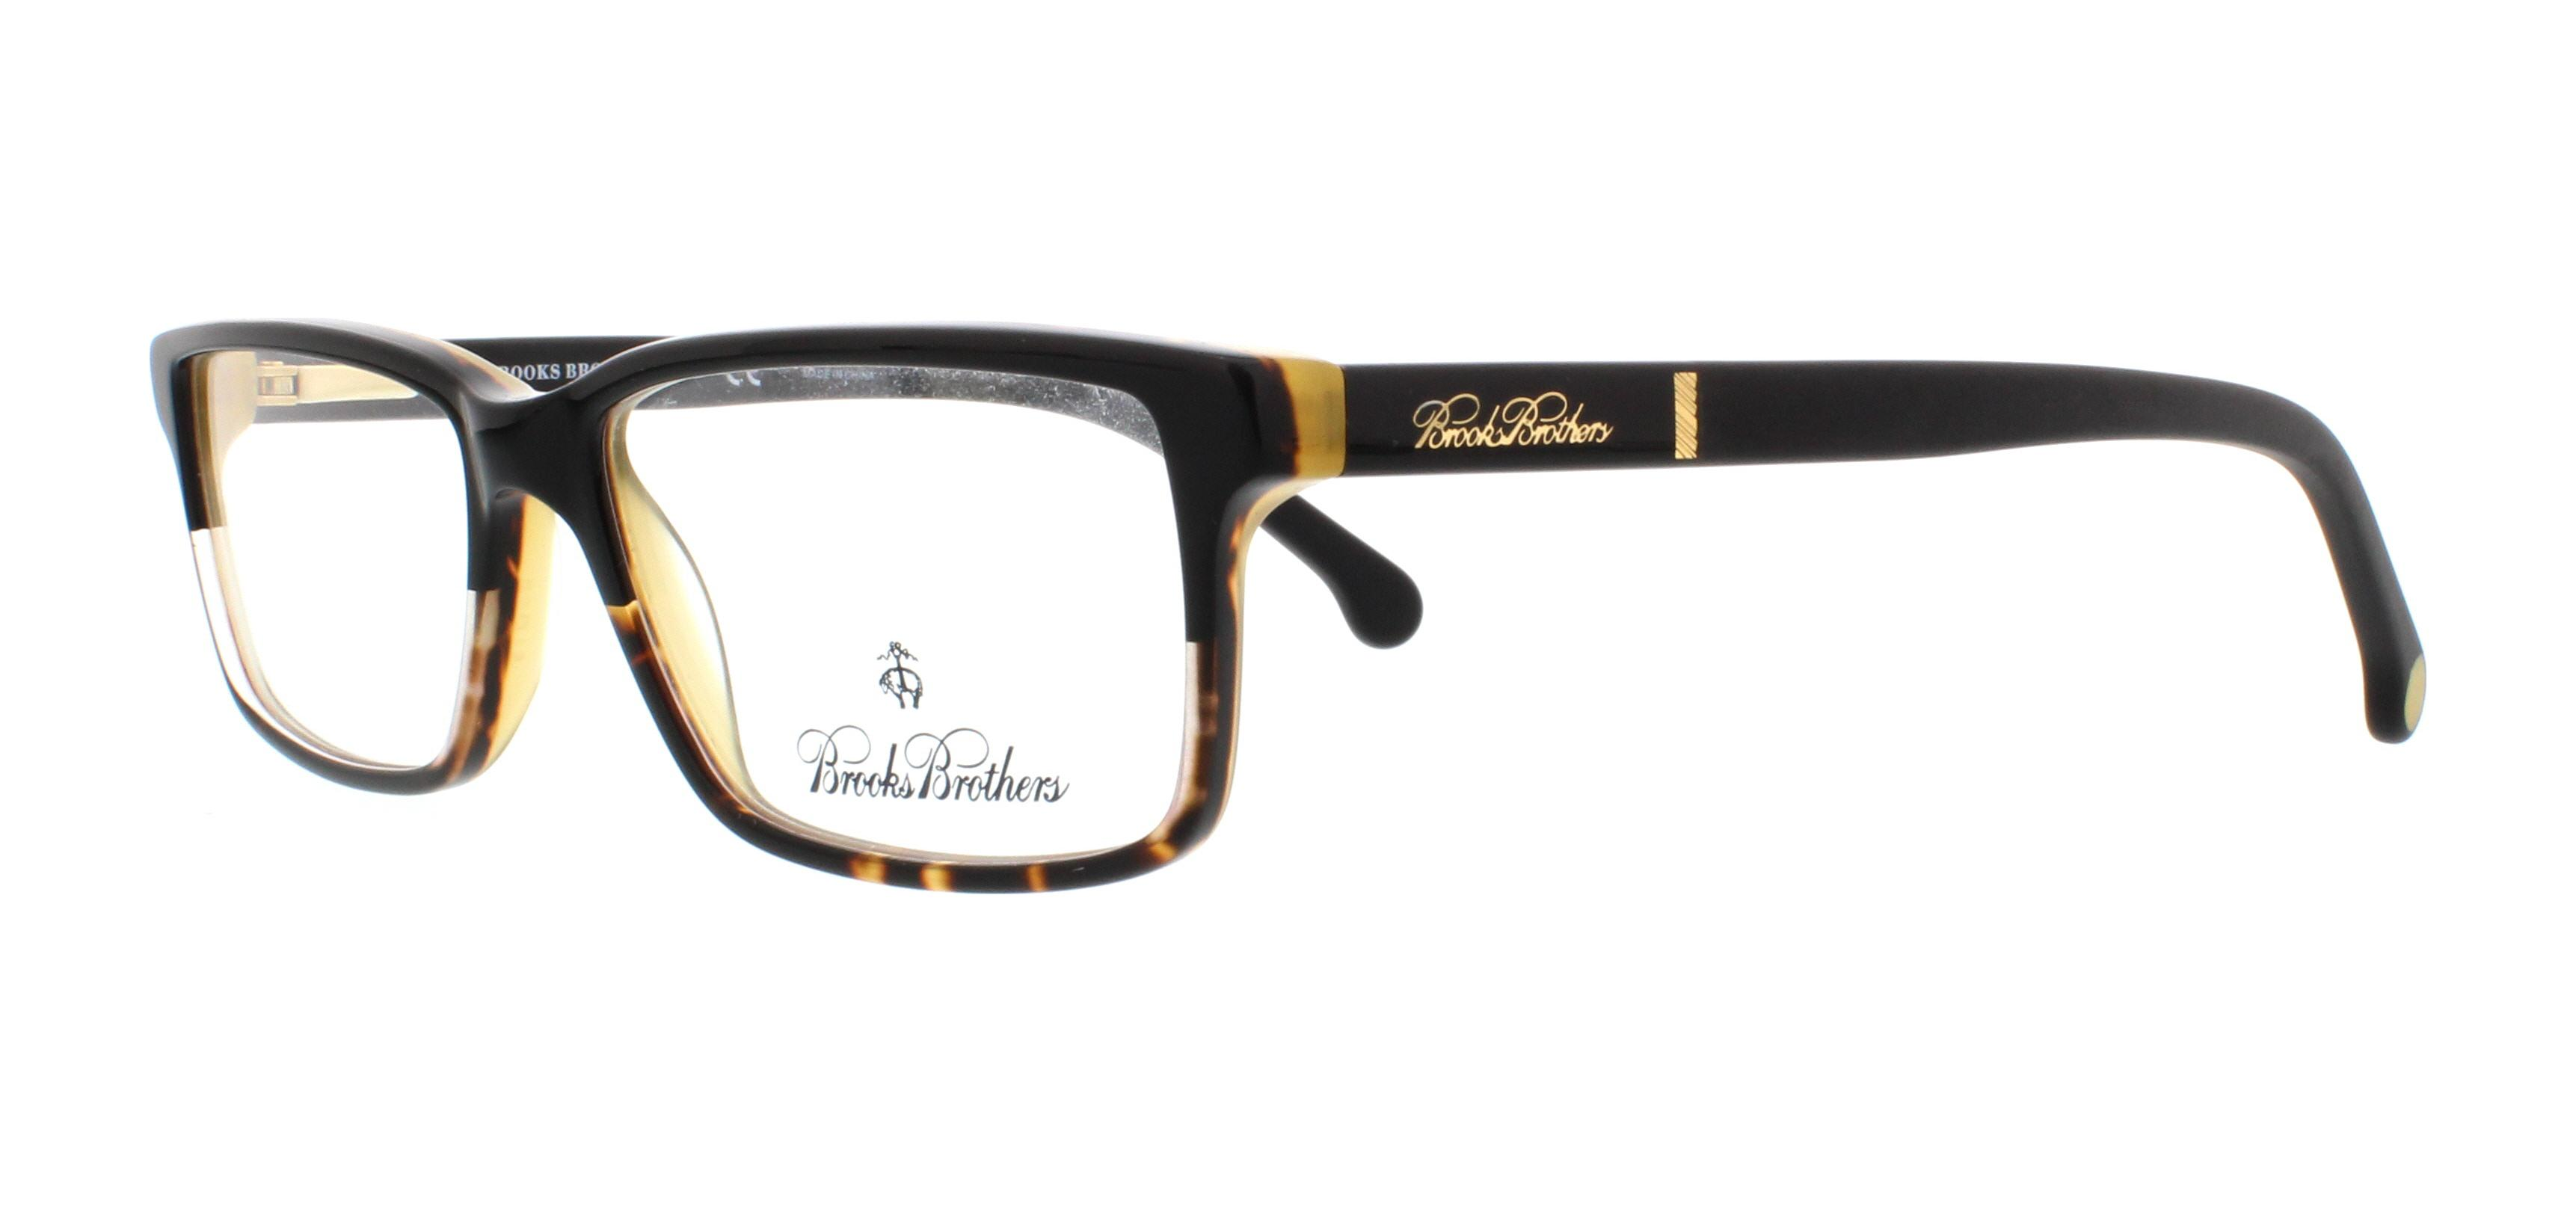 be8bdd816a2 BROOKS BROTHERS Eyeglasses BB 2029 6099 Black Tortoise Matte Black Tortoise  53MM - Walmart.com